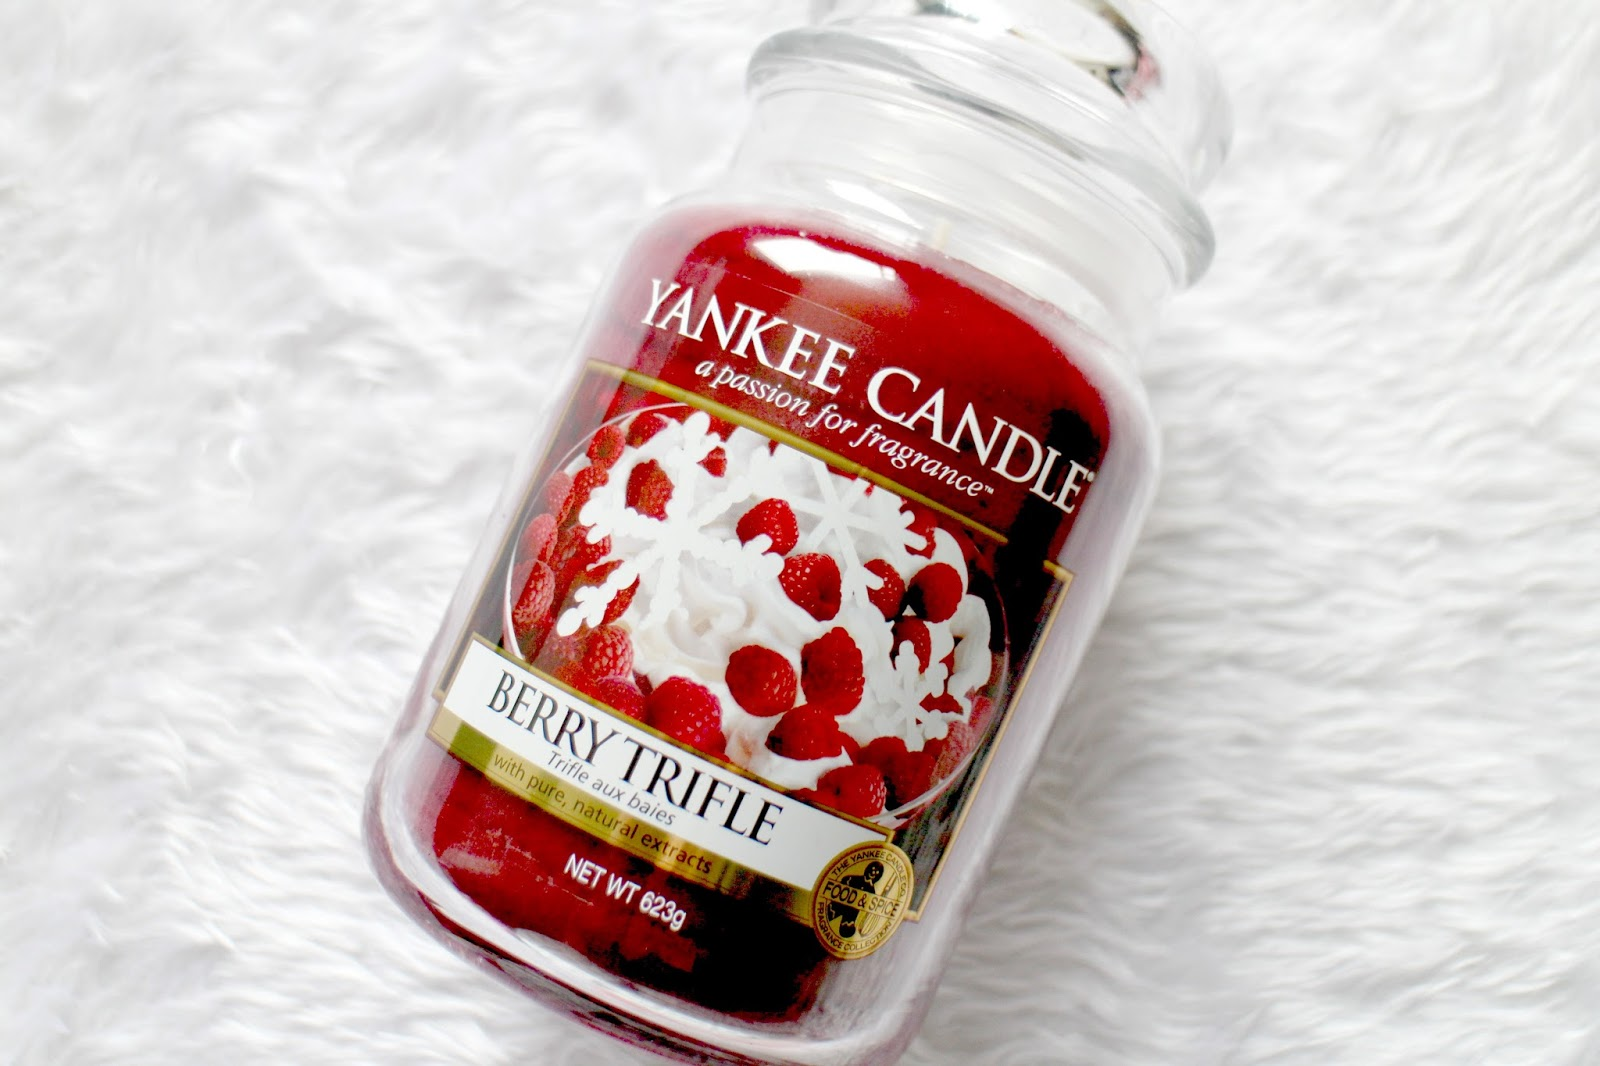 Yankee Candle Berry Trifle Large Jar Review